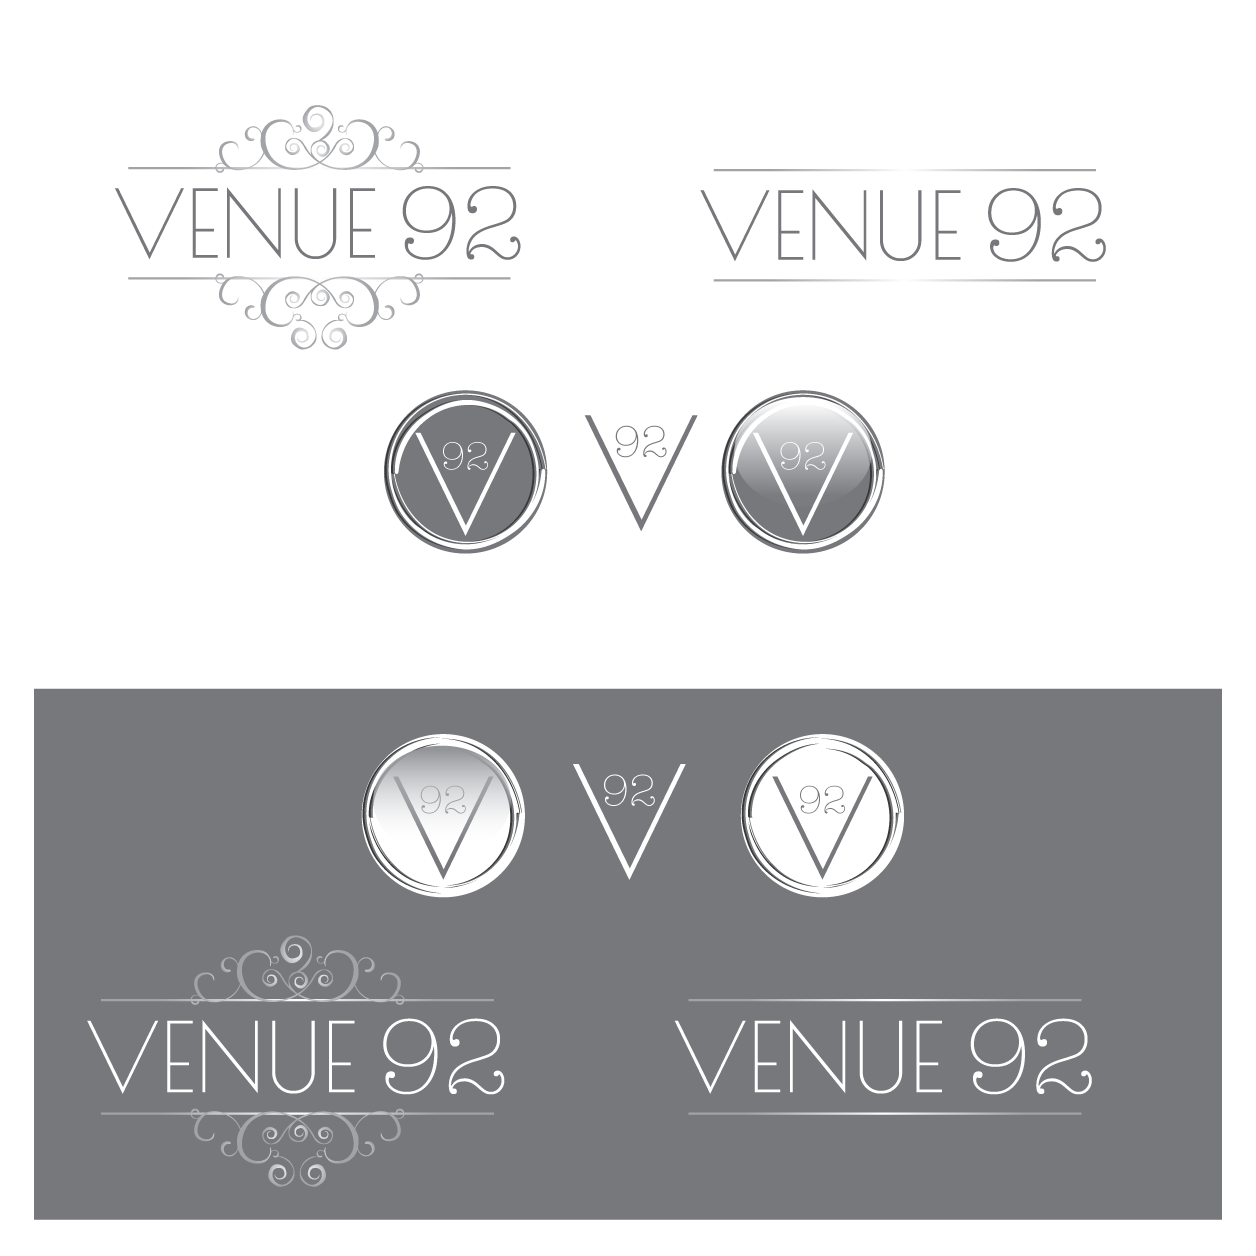 New logo wanted for Venue 92